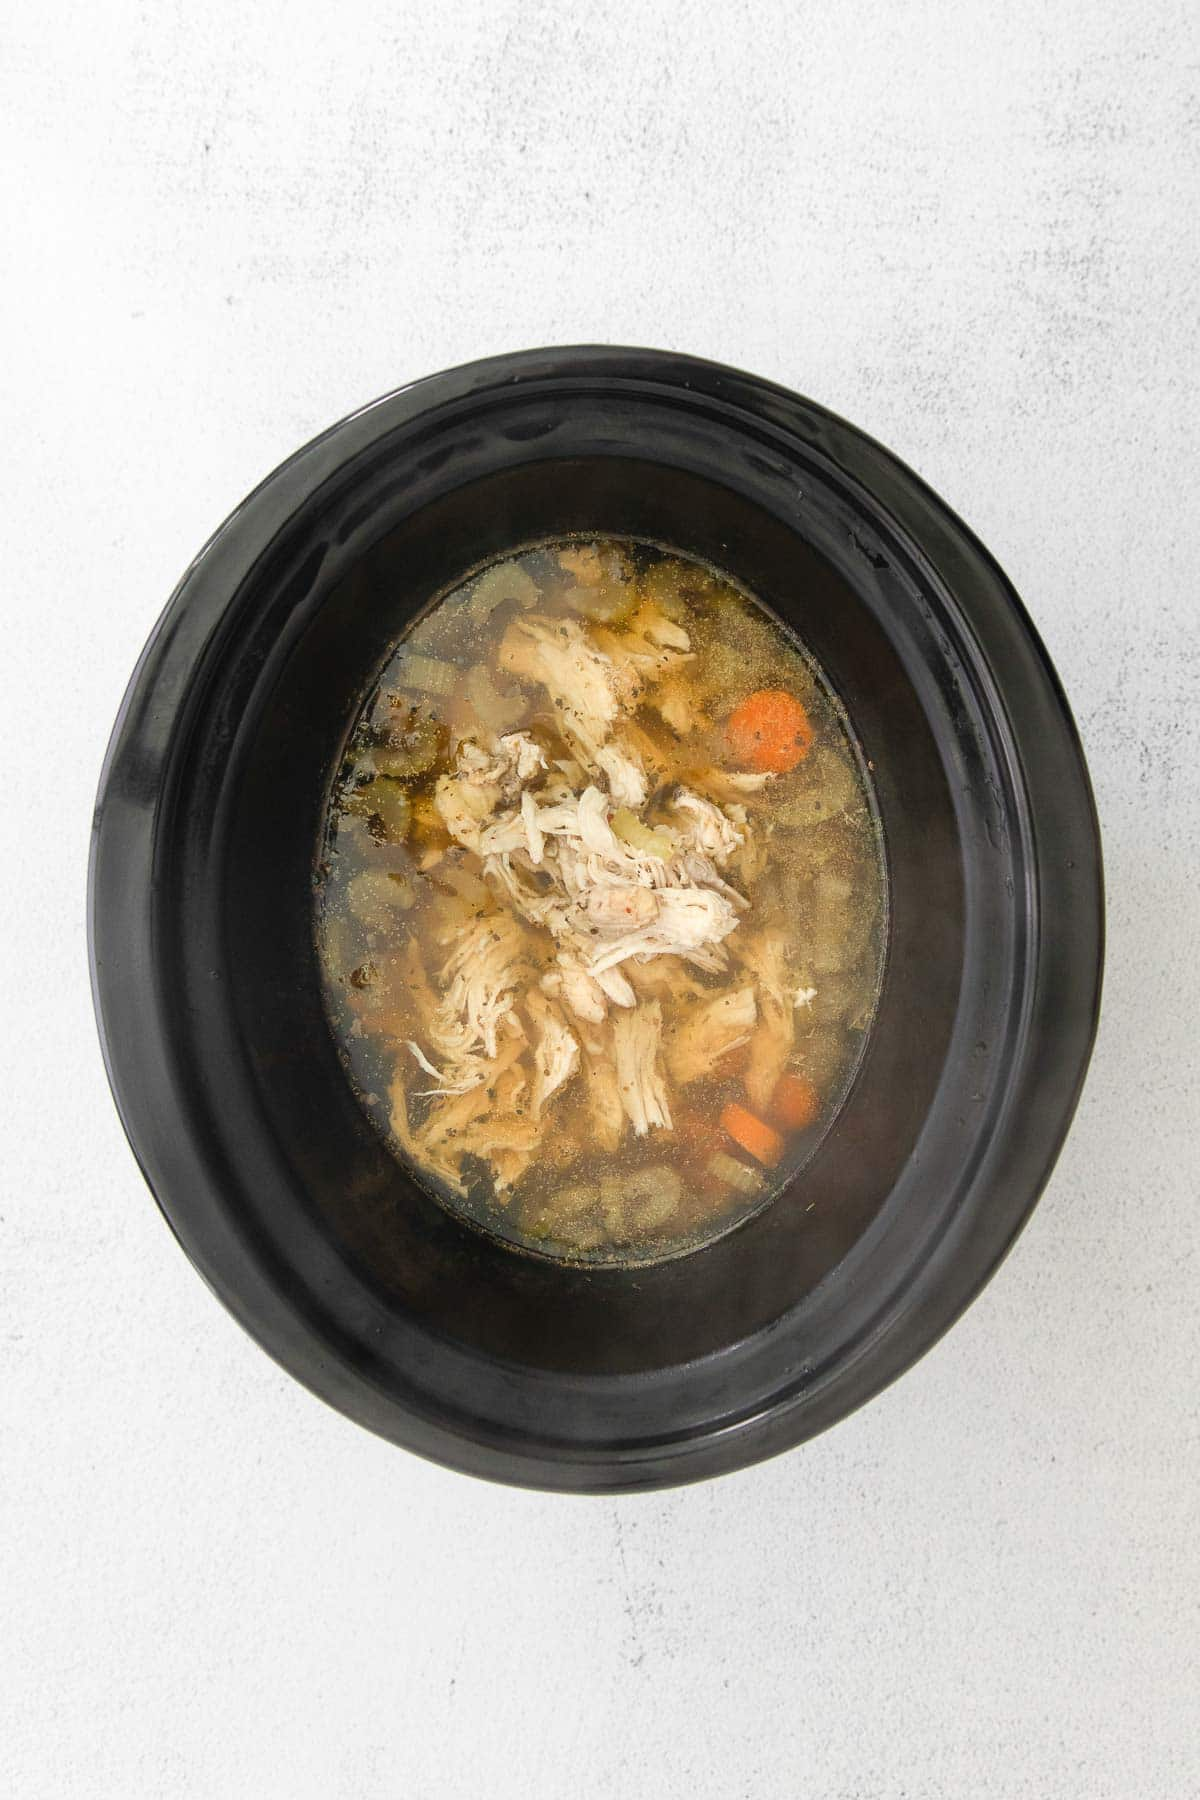 black slow cooker with shredded chicken and sliced carrots in broth.